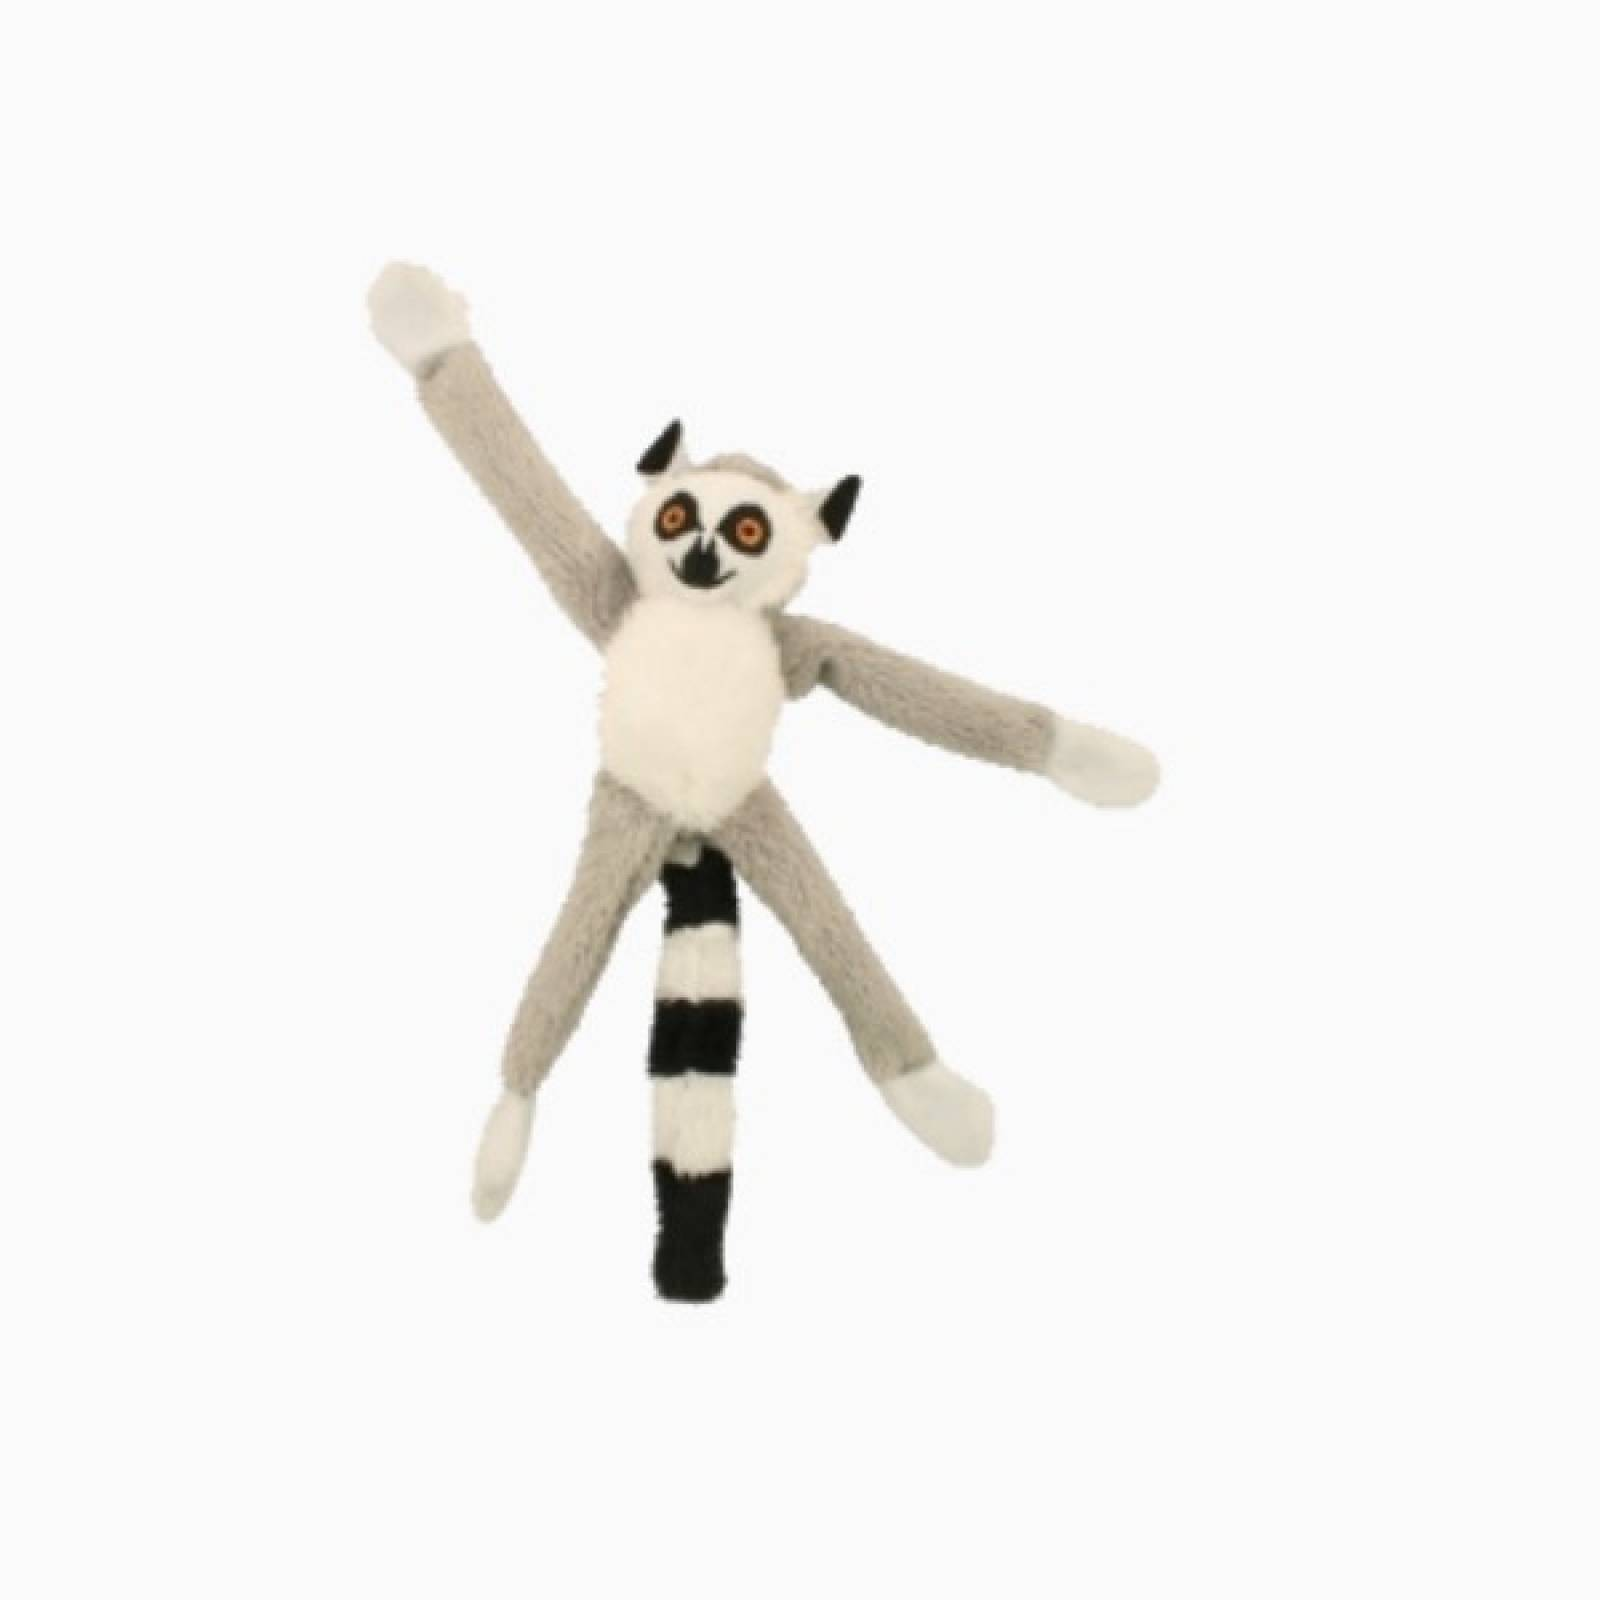 Small Lemur Magnet Mate Soft Toy